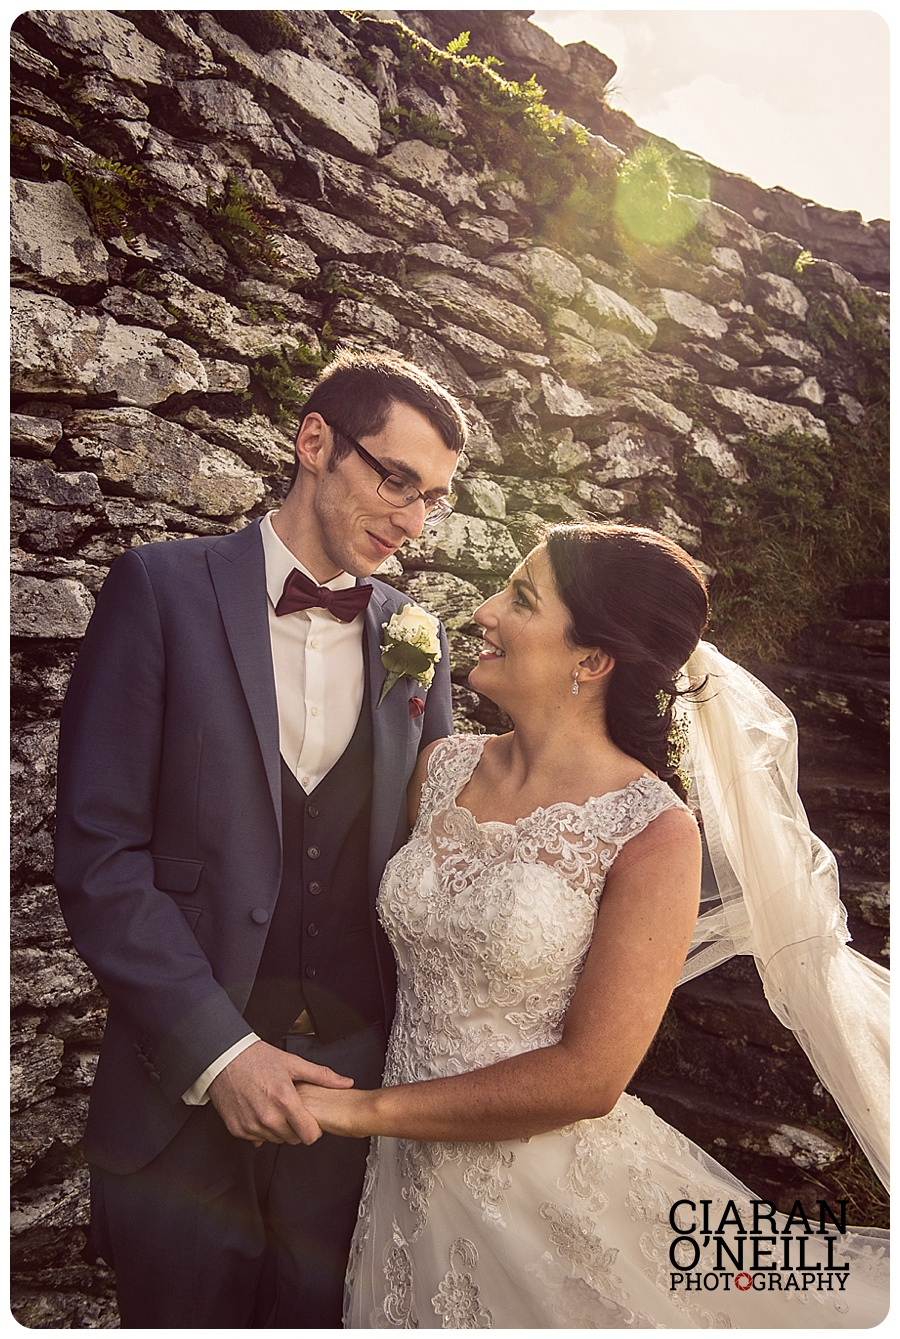 Niamh & Colm's wedding at An Grianan Hotel by Ciaran O'Neill Photography